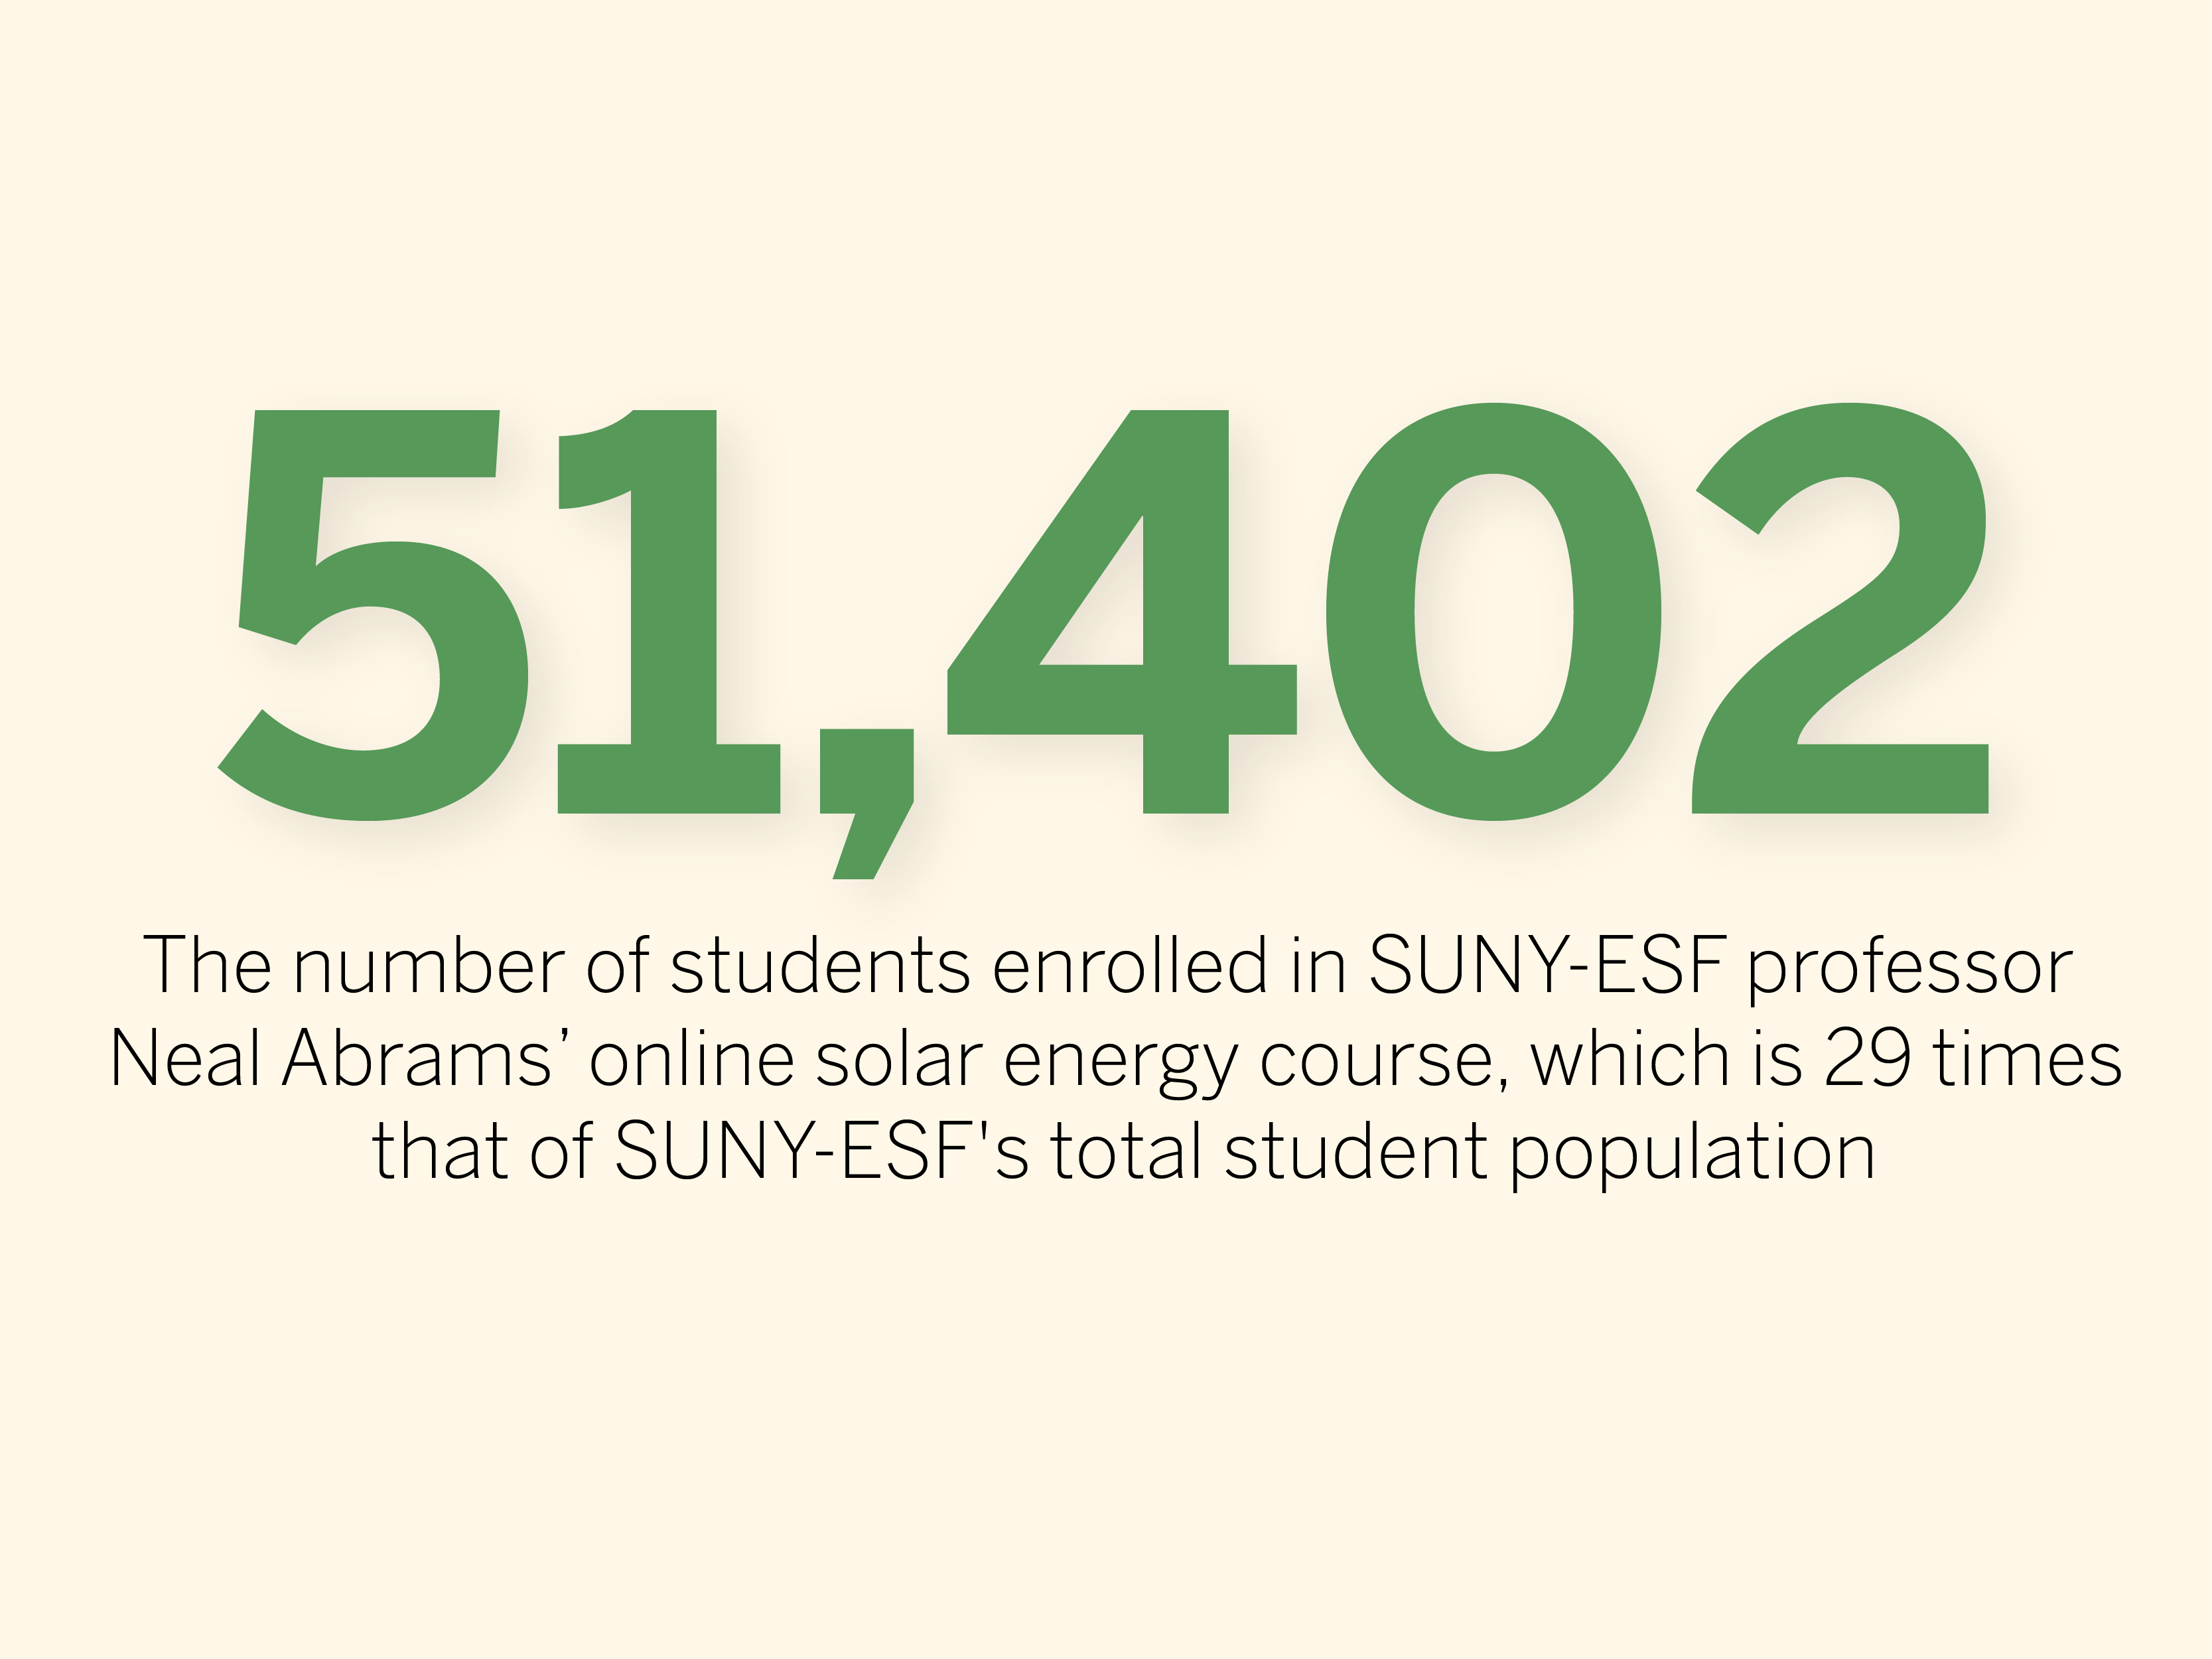 Over 50,000 students enroll in SUNY-ESF solar energy course